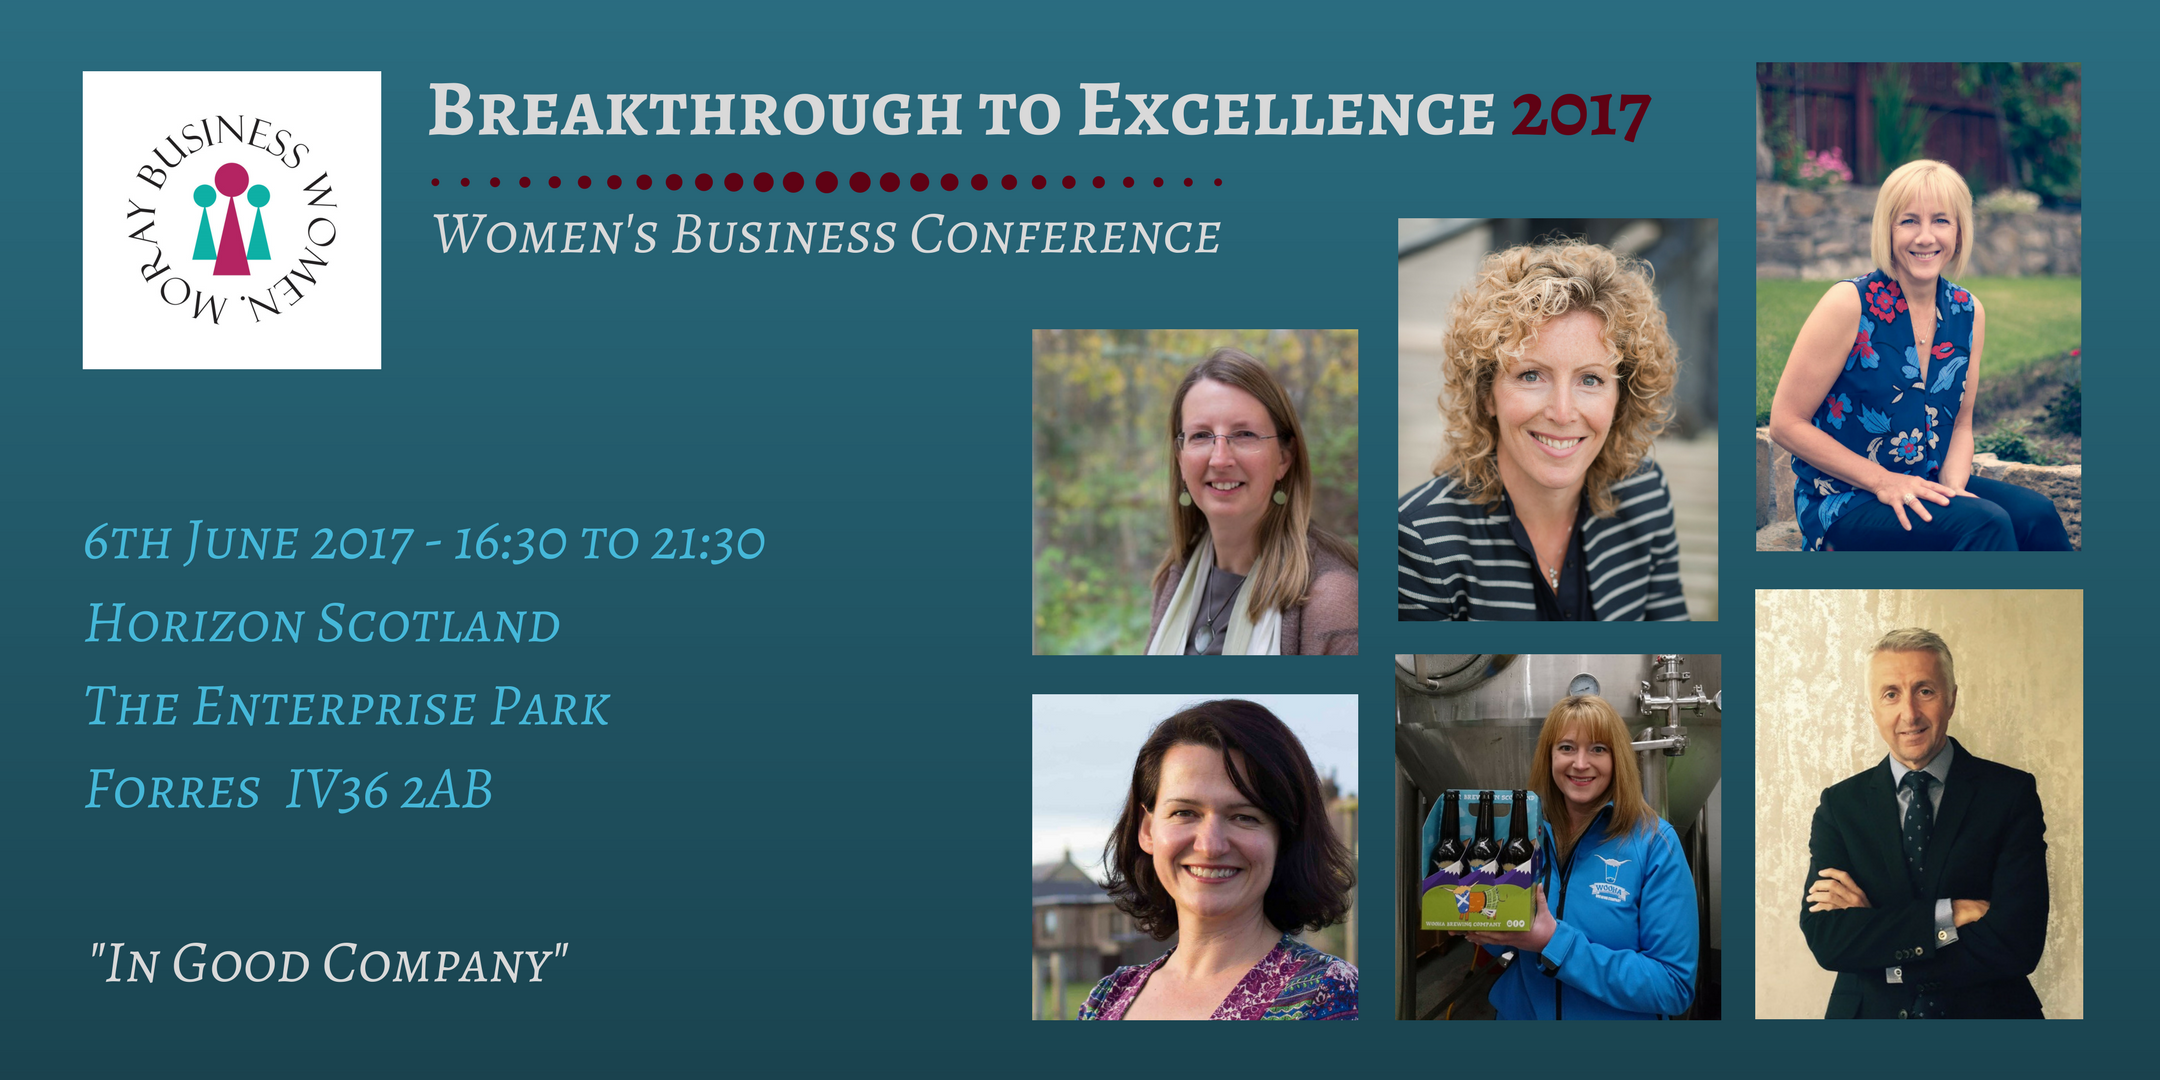 Breakthrough-to-Excellence-2017